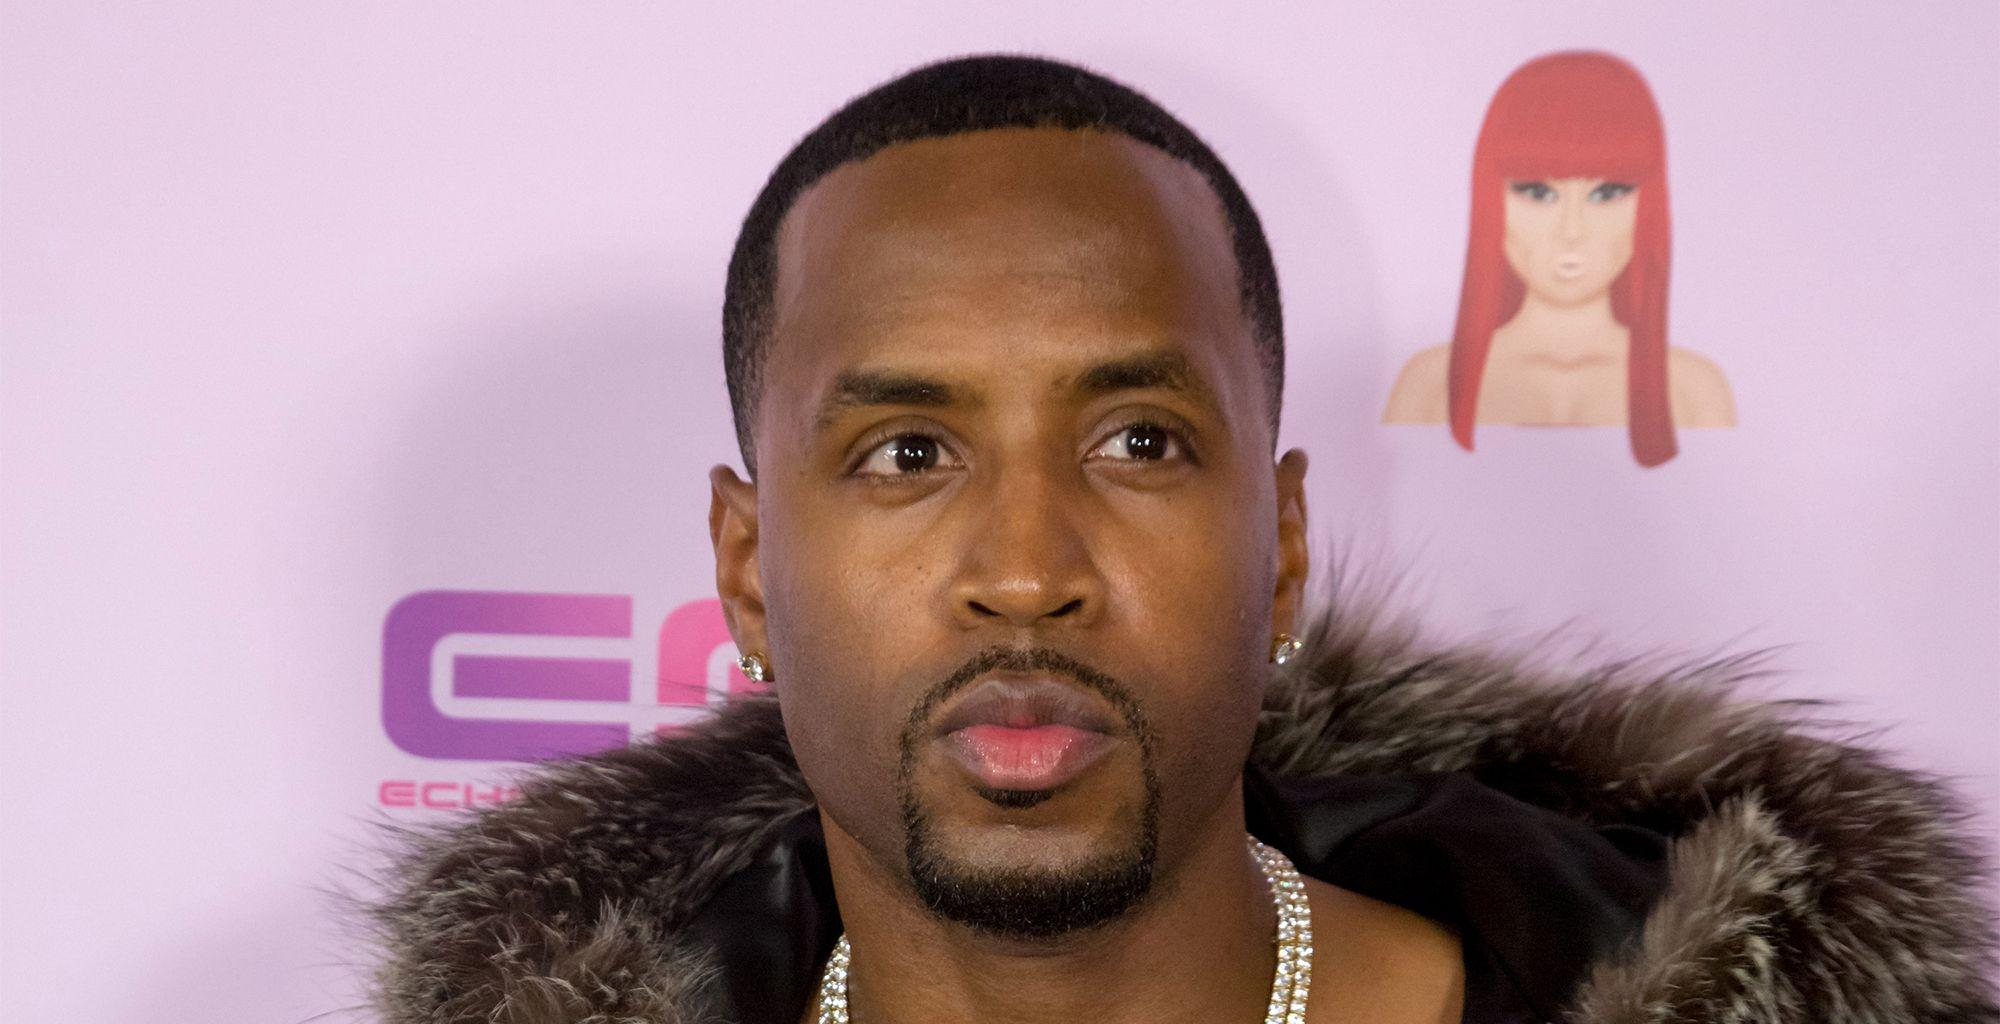 Safaree Motivates Fans With This Photo He Just Shared - Check Out How He Impressed People